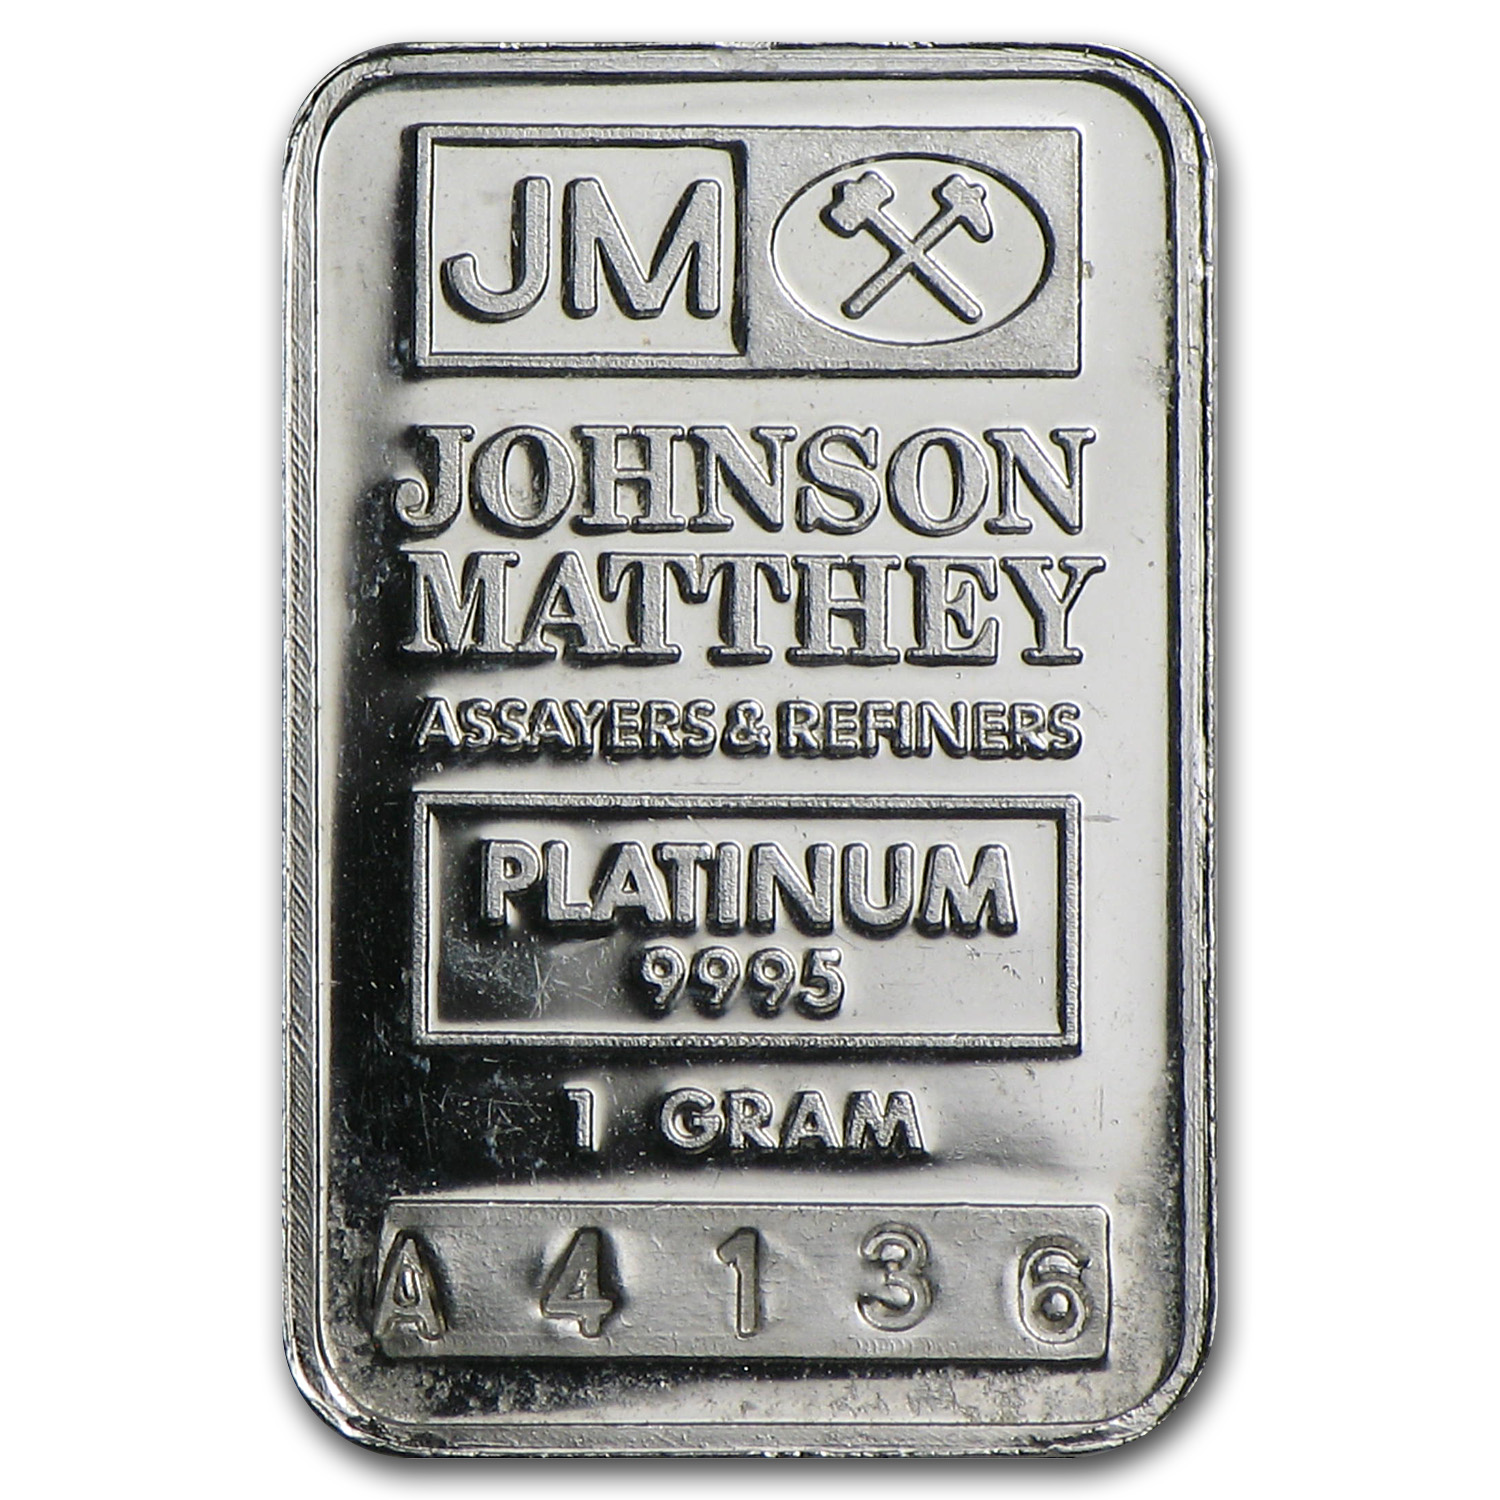 1 gram Johnson Matthey Platinum Bar (JM Logo) .9995+ Fine